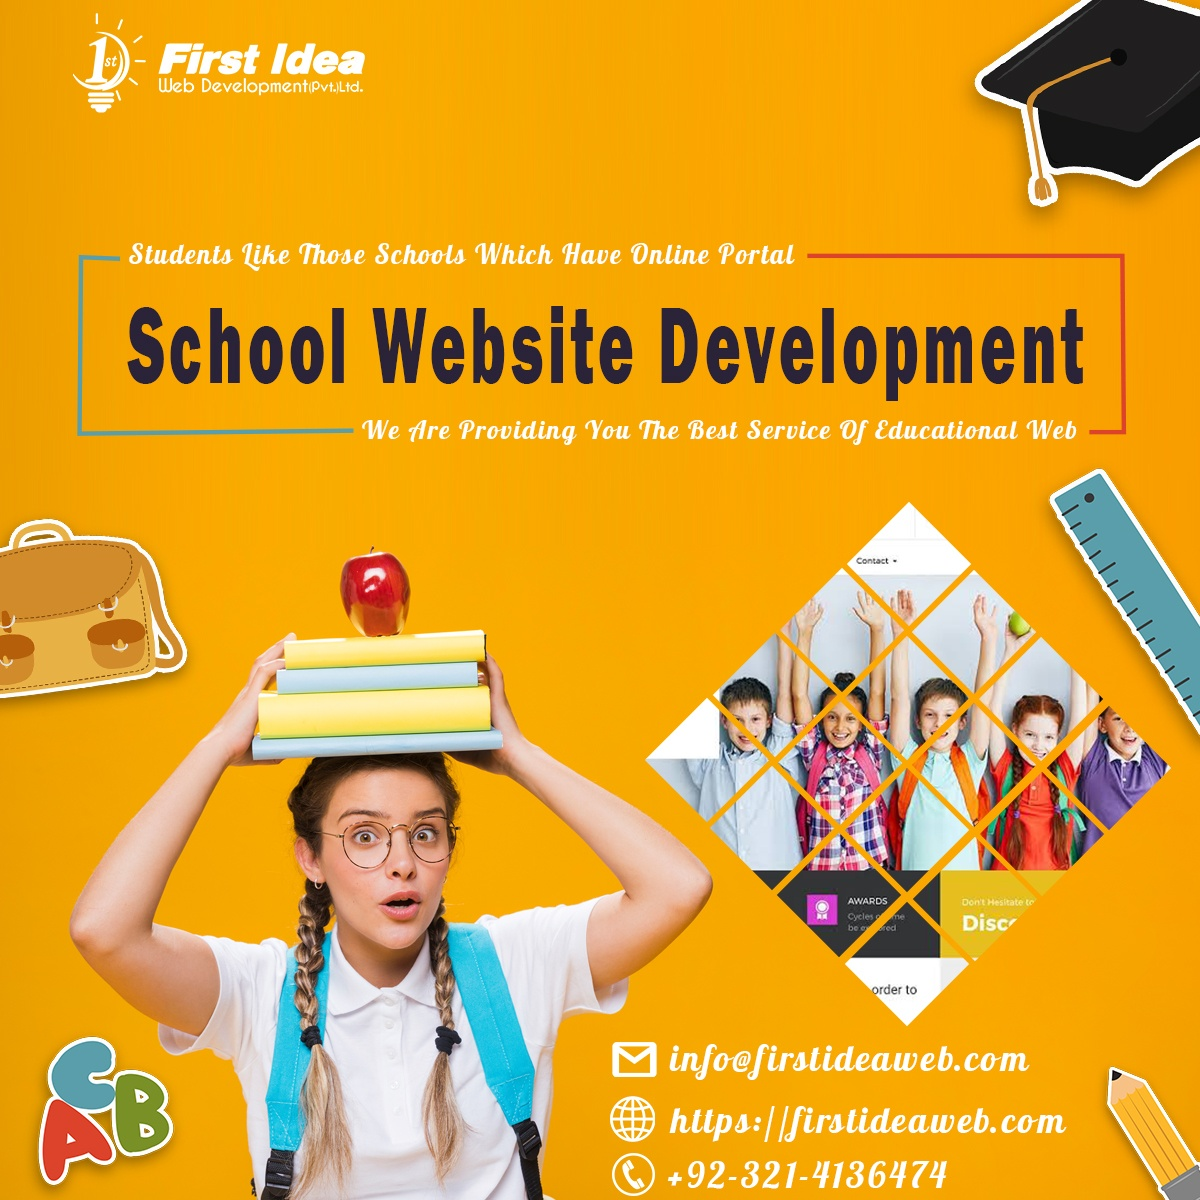 Best School Website Design Companies, School Web Design, Create an education website, Build a school website, school management software development service